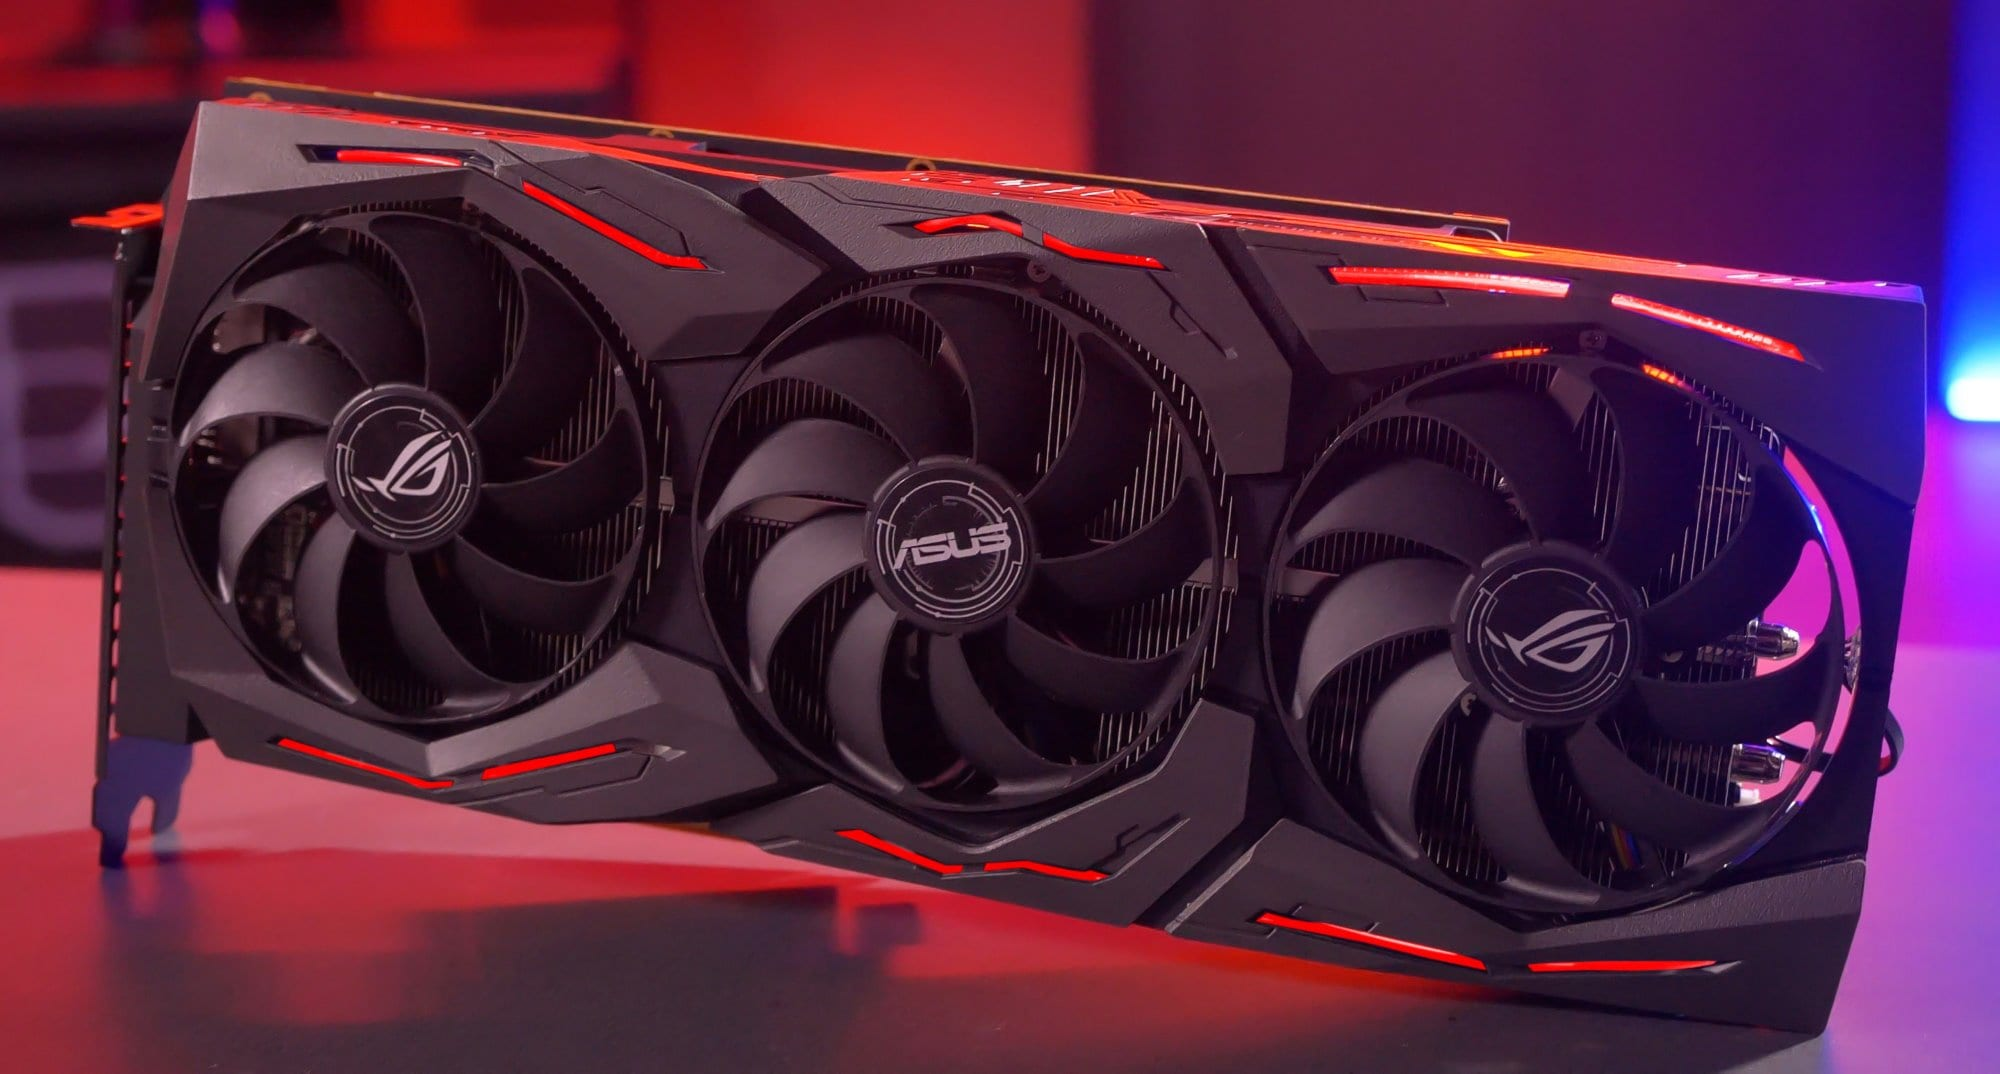 Gigabyte, HIS, and ASUS showed their versions of video cards Radeon RX 5700